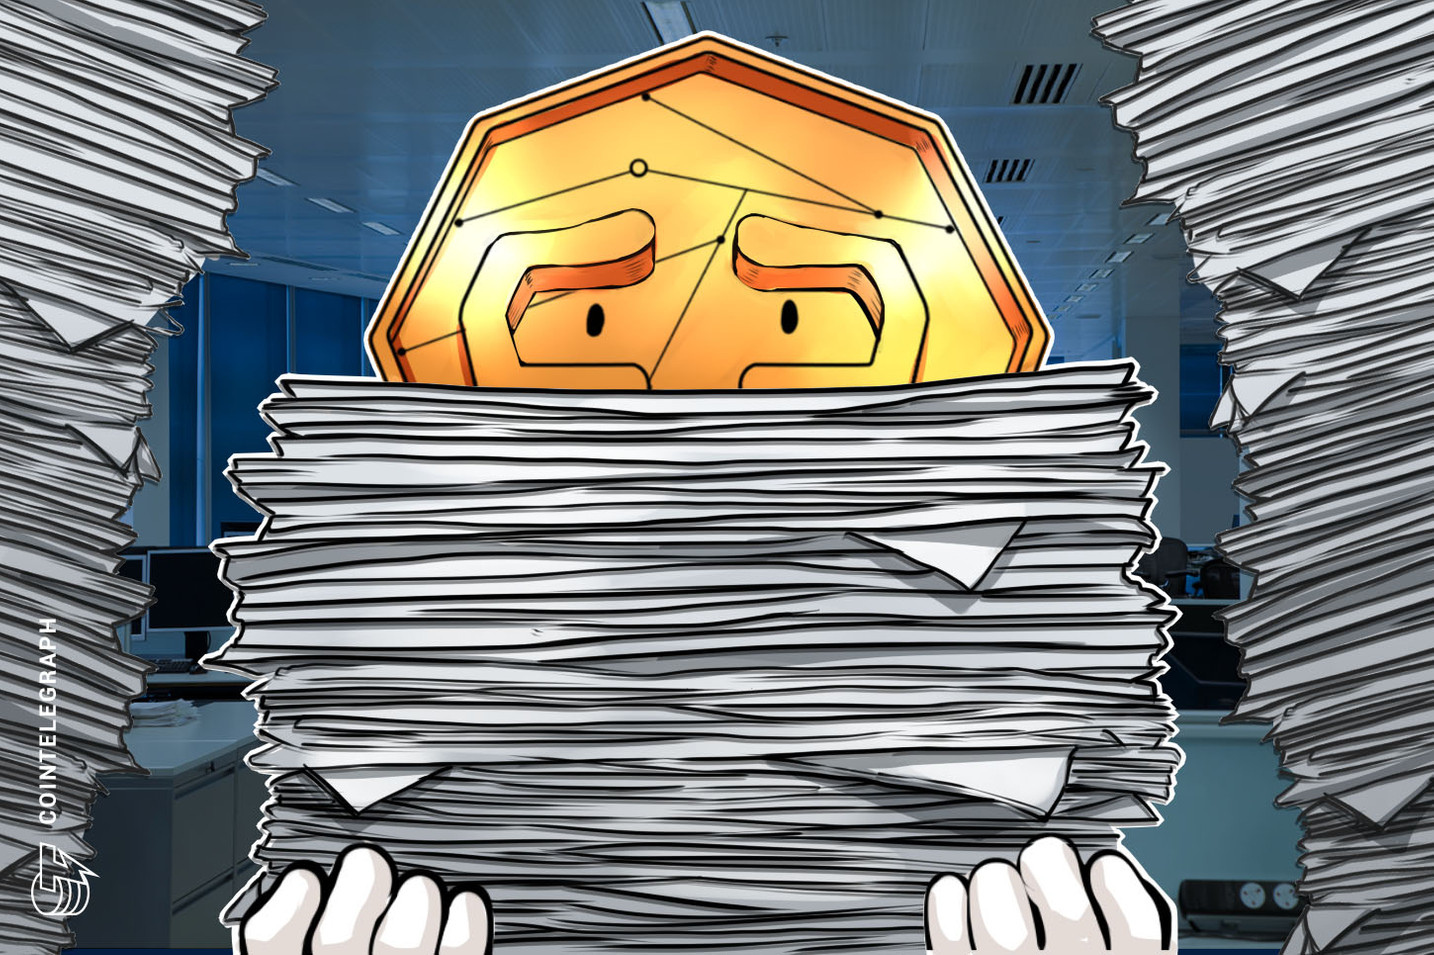 Bank of International Settlements head says cryptos require more regulation